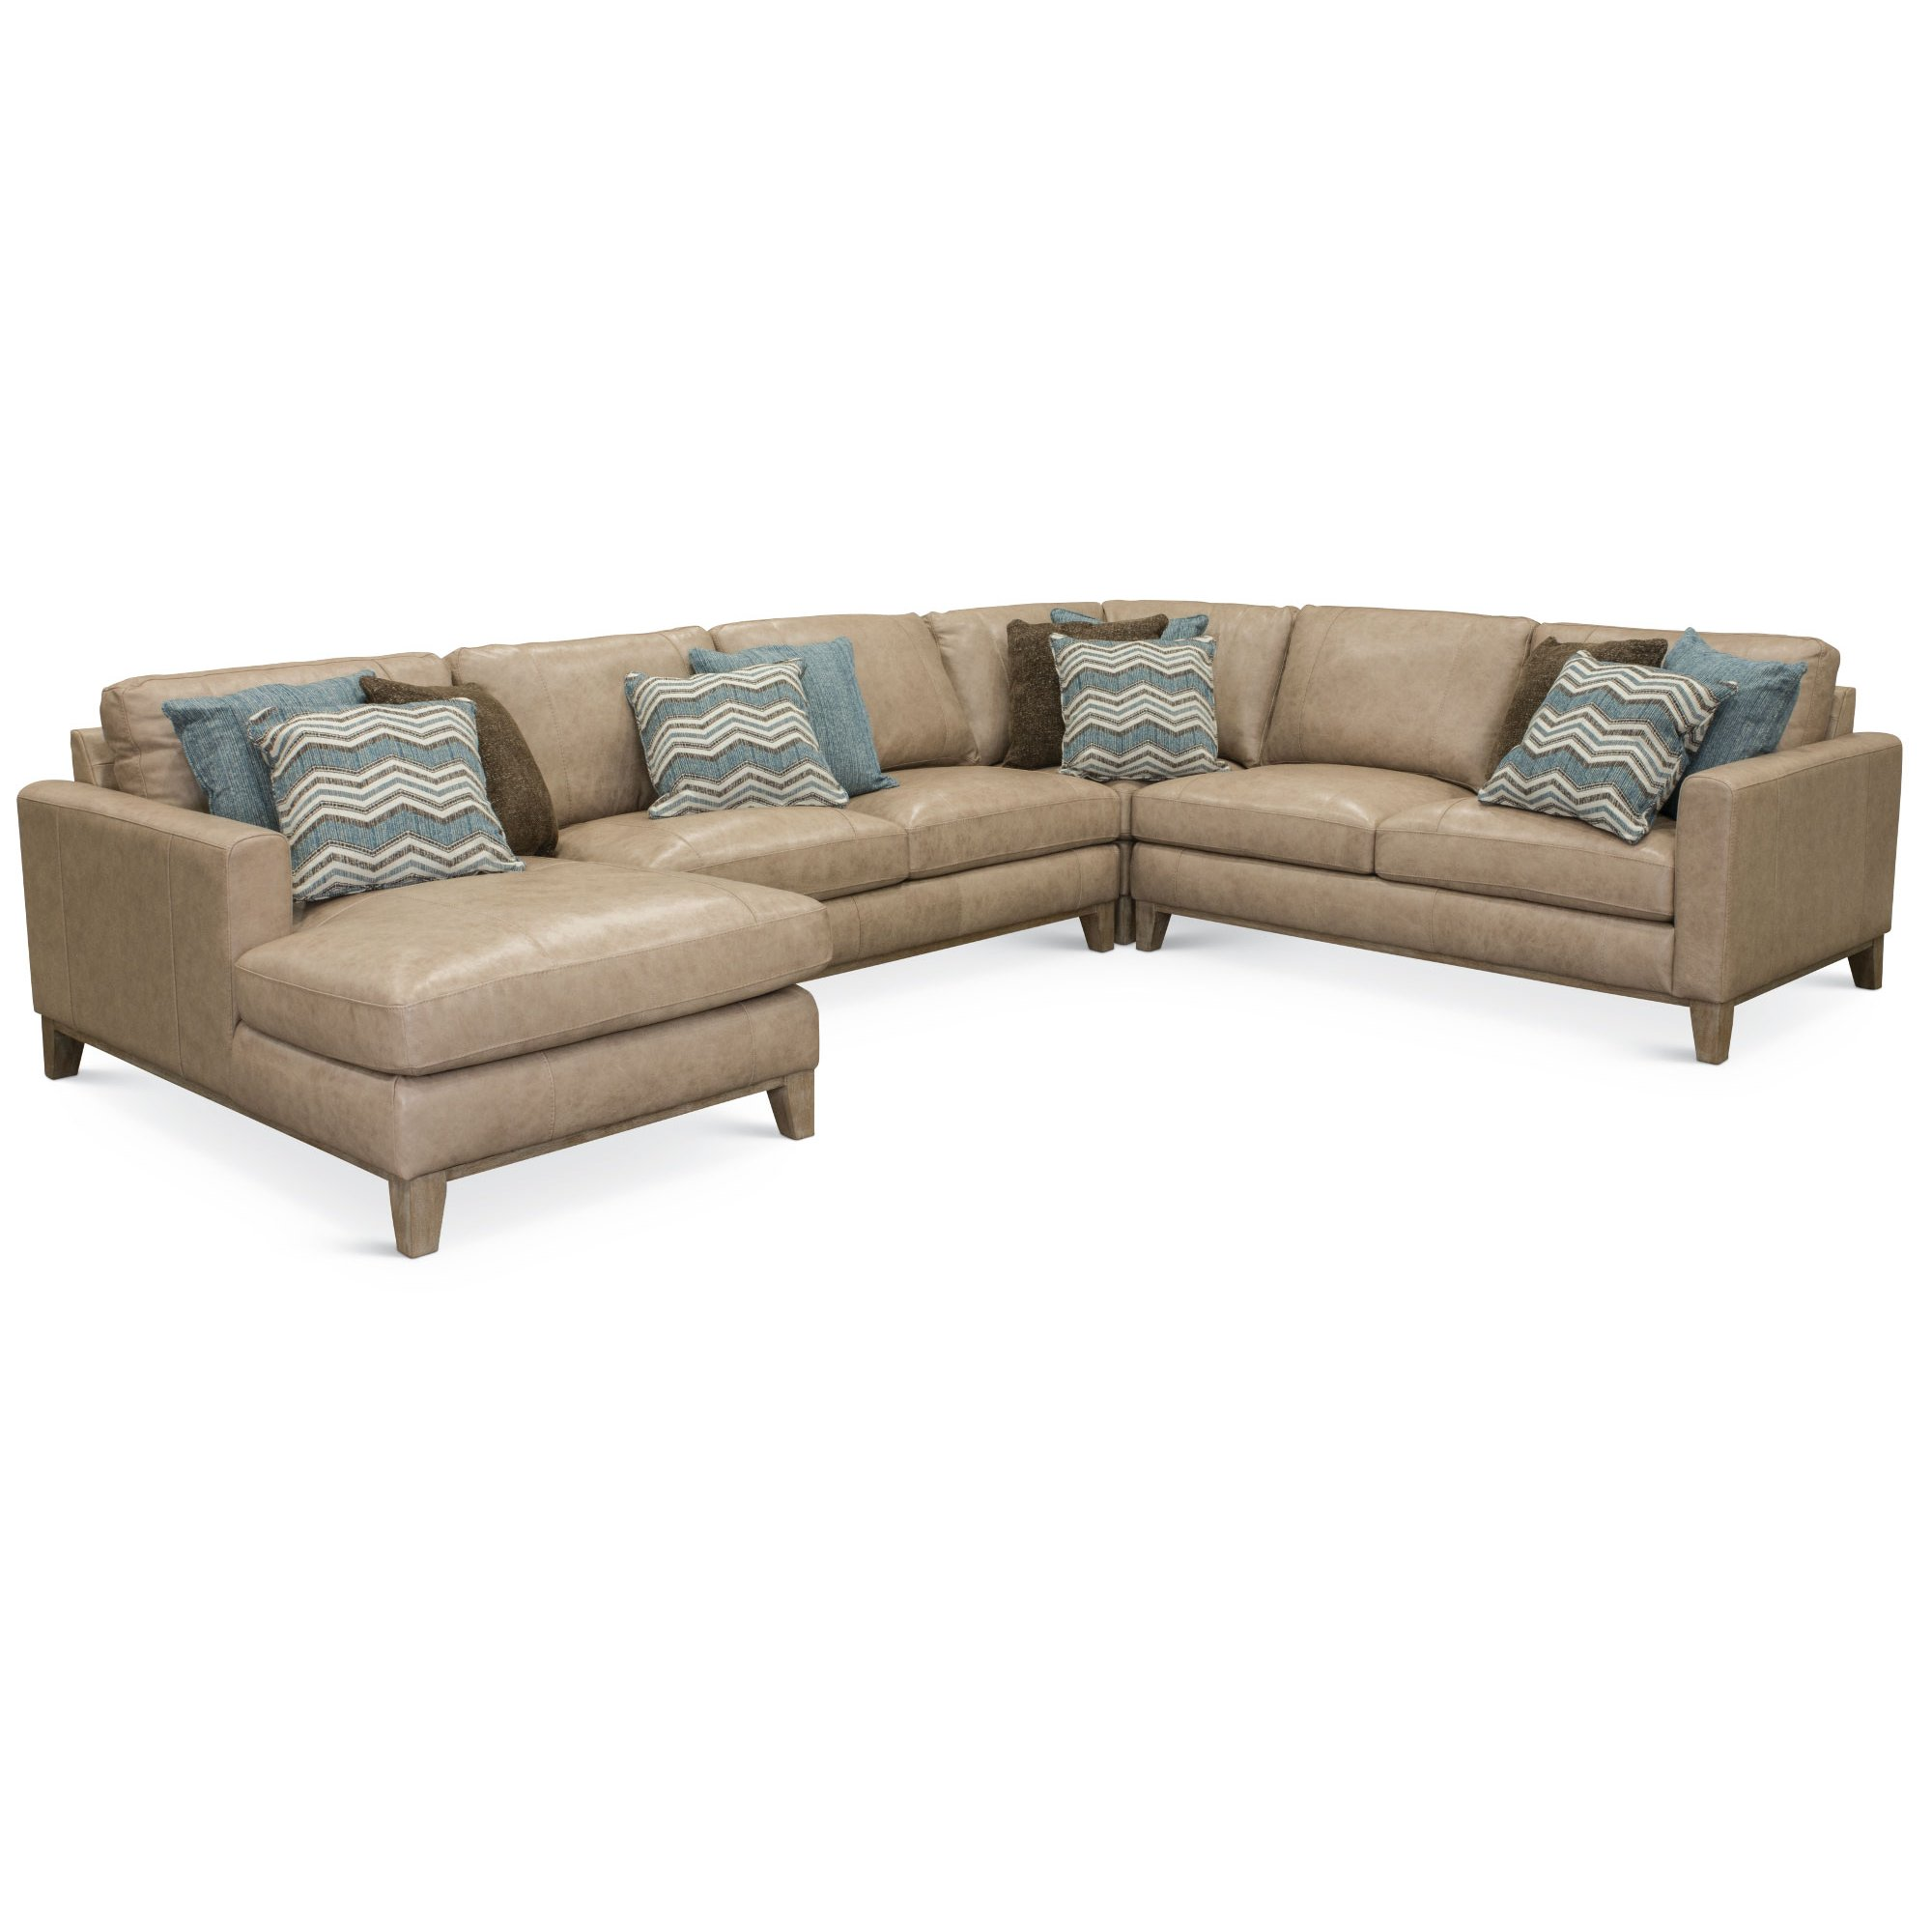 Contemporary 4 Piece Sand Leather Sectional Sofa